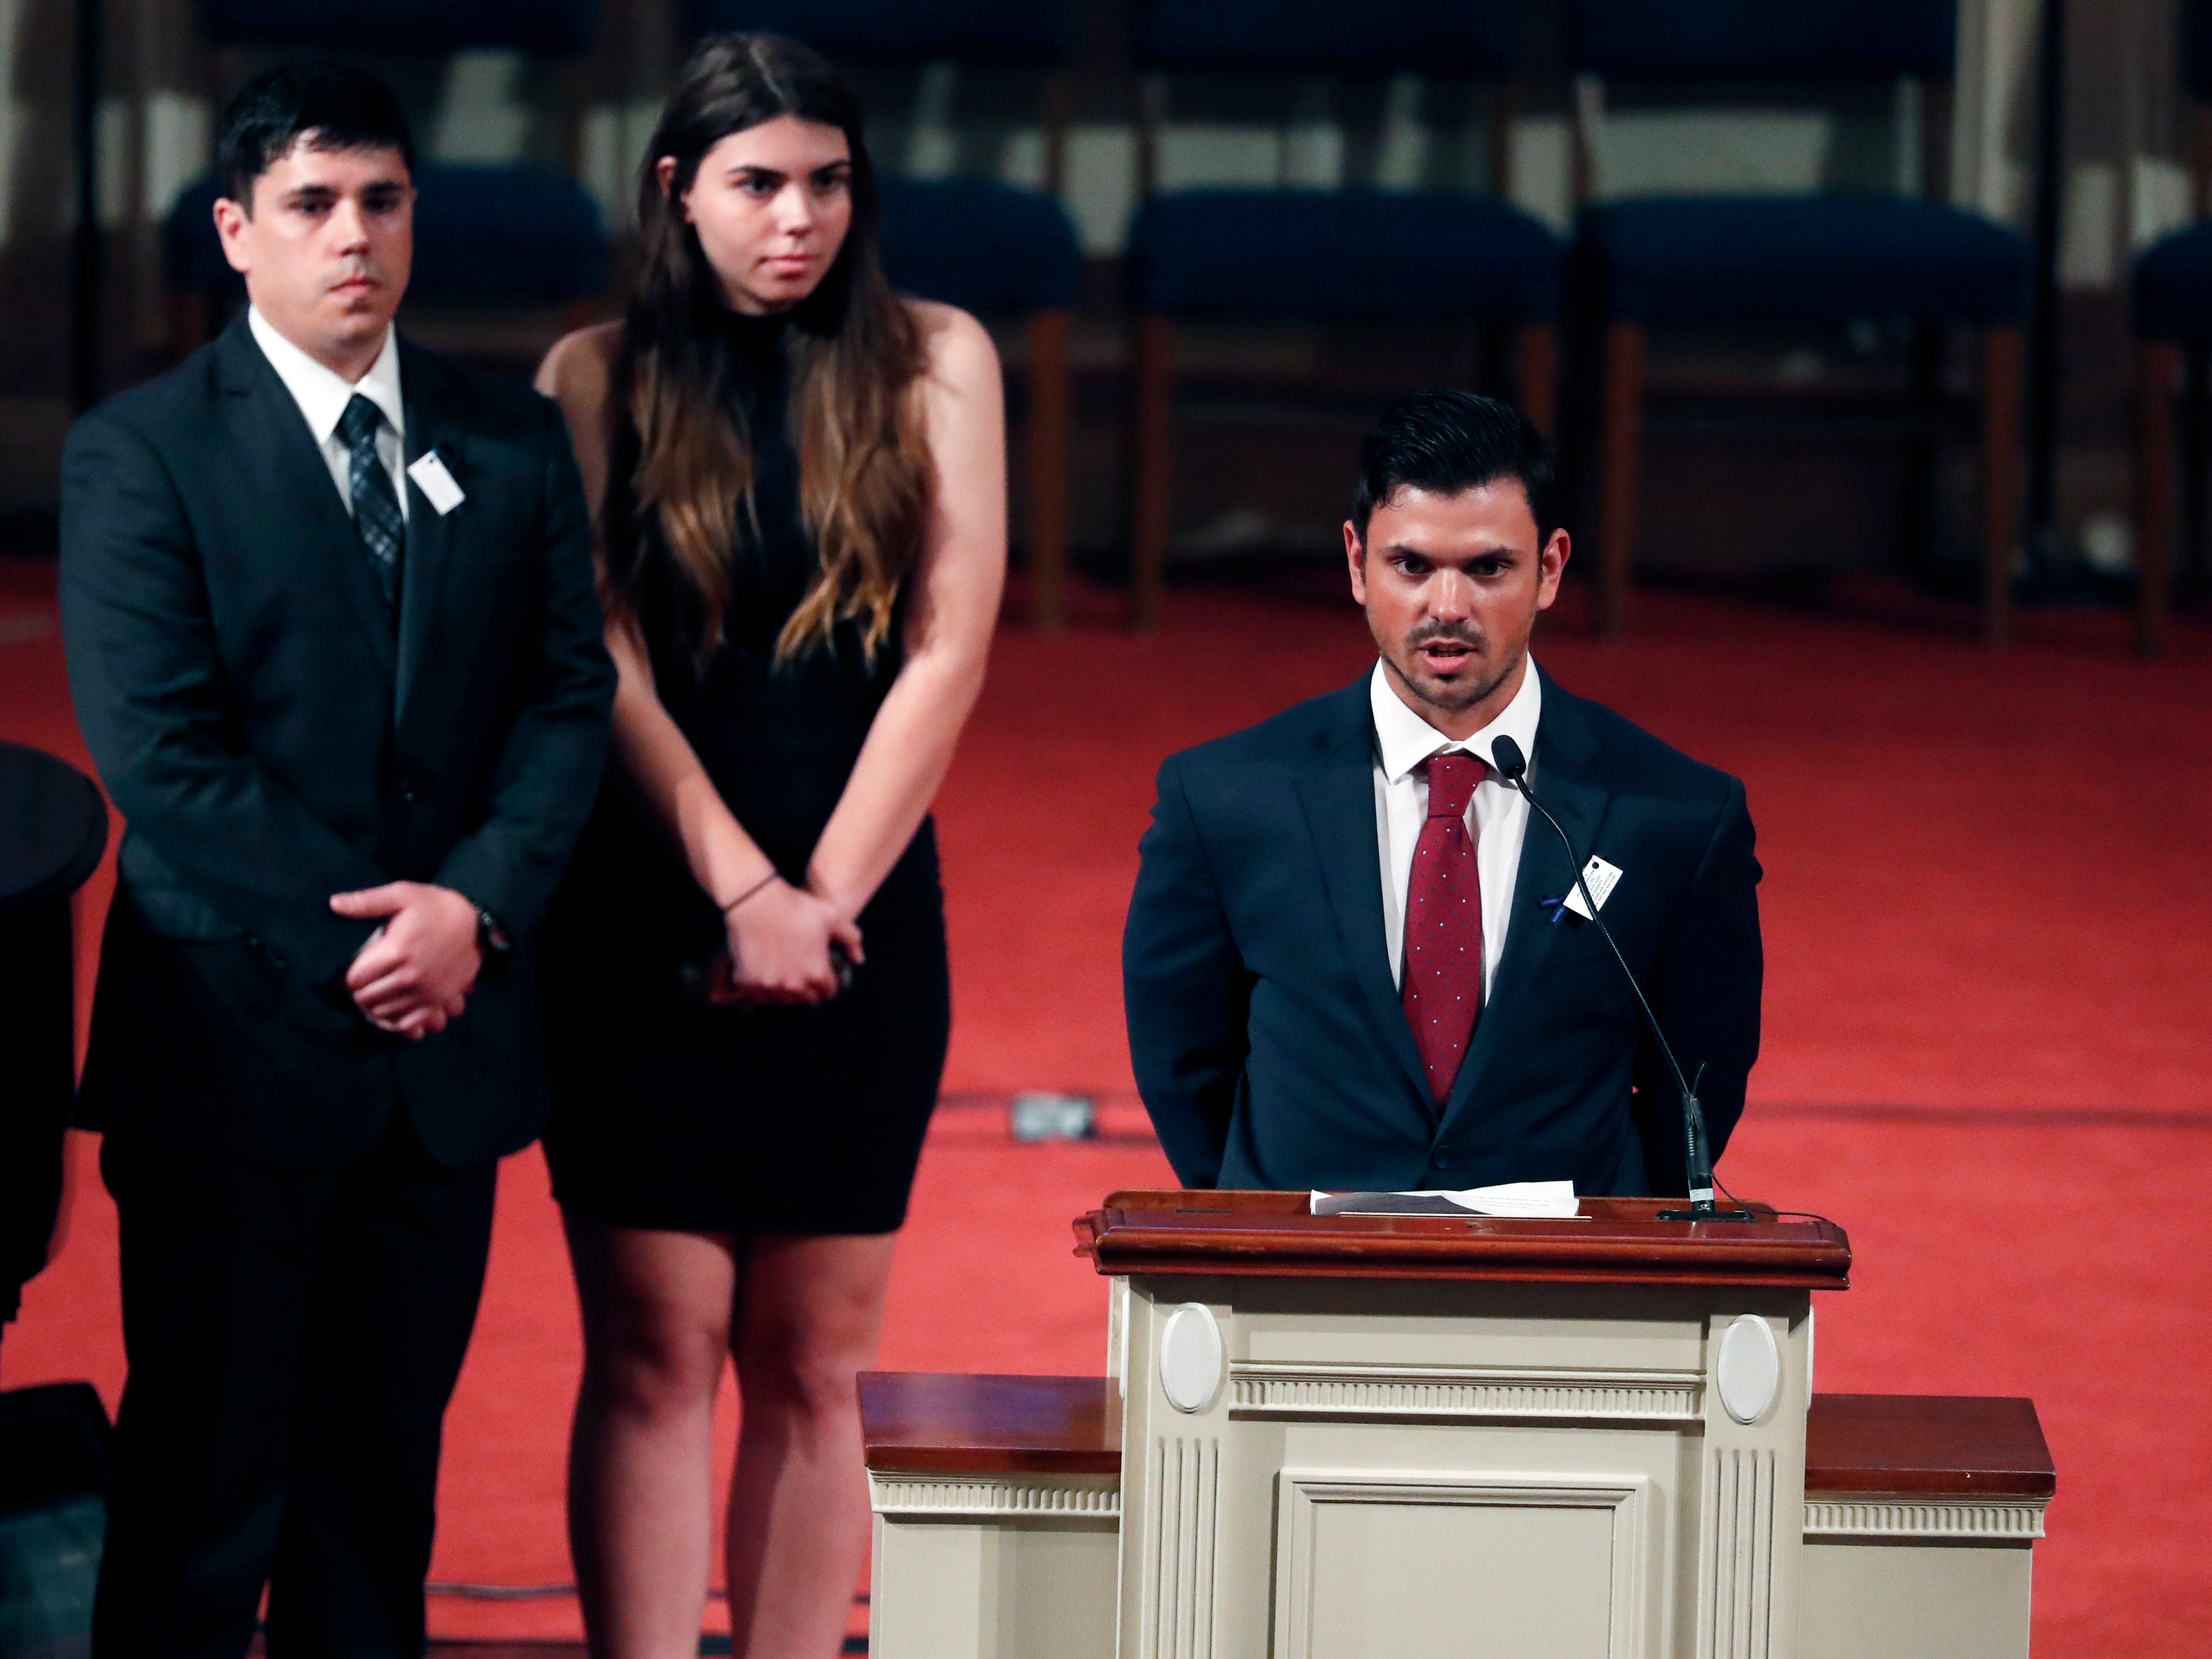 Logan Grundel, step-son of officer Robert S. McKeithen, speaks of his care for them and his love of duty, during McKeithen' funeral at the First Baptist Church of Biloxi, Monday, May 13, 2019. Brother Levi and sister Lauren Grundel also spoke to a filled church.